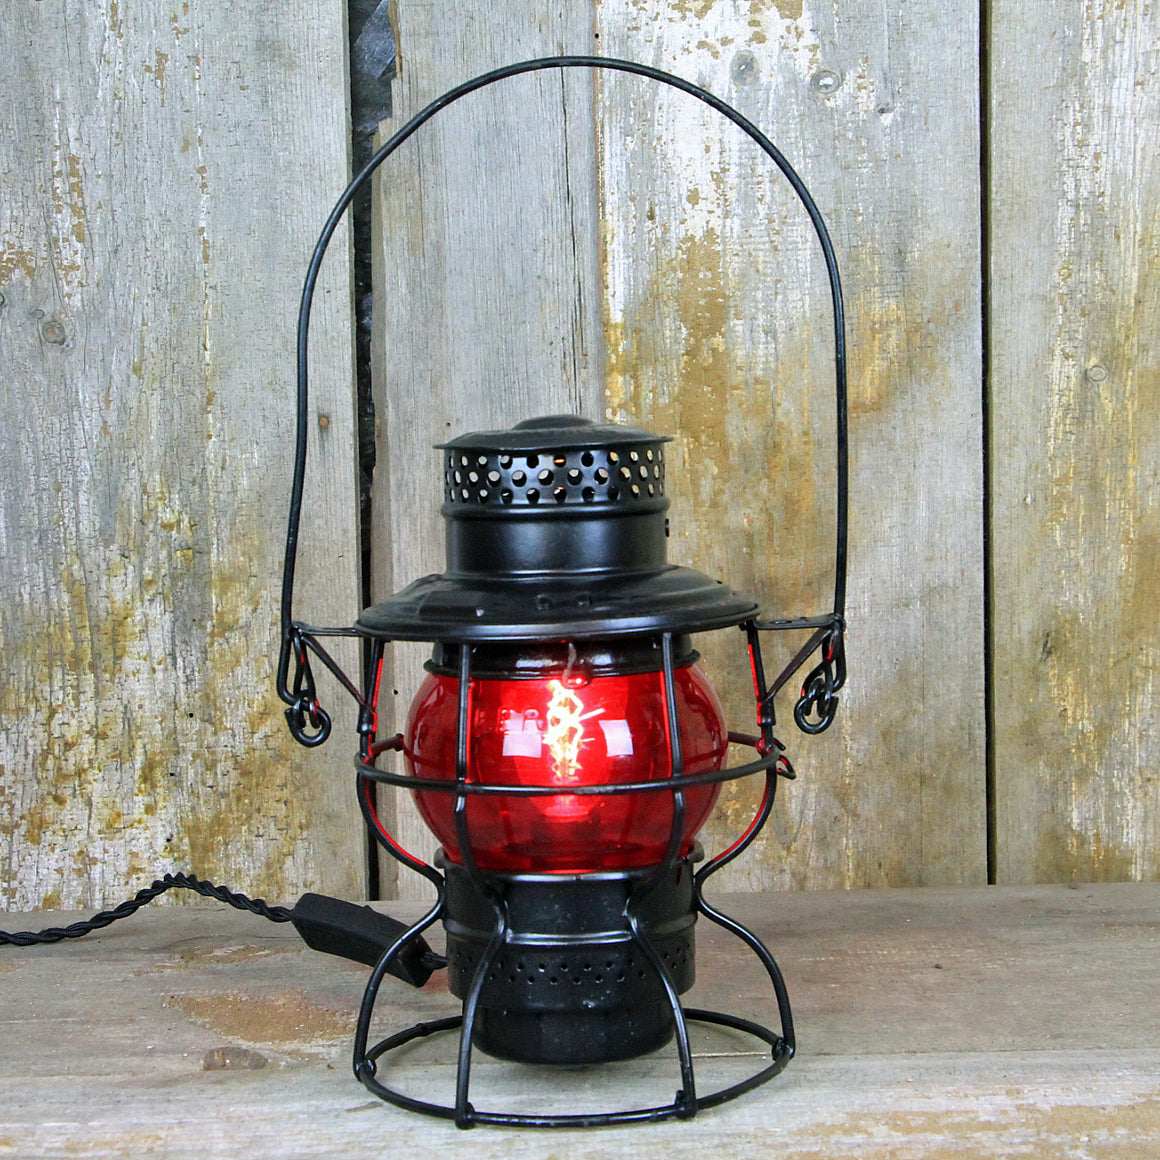 CNR Railroad Lantern Black 1920's #301 - The Lighting Works